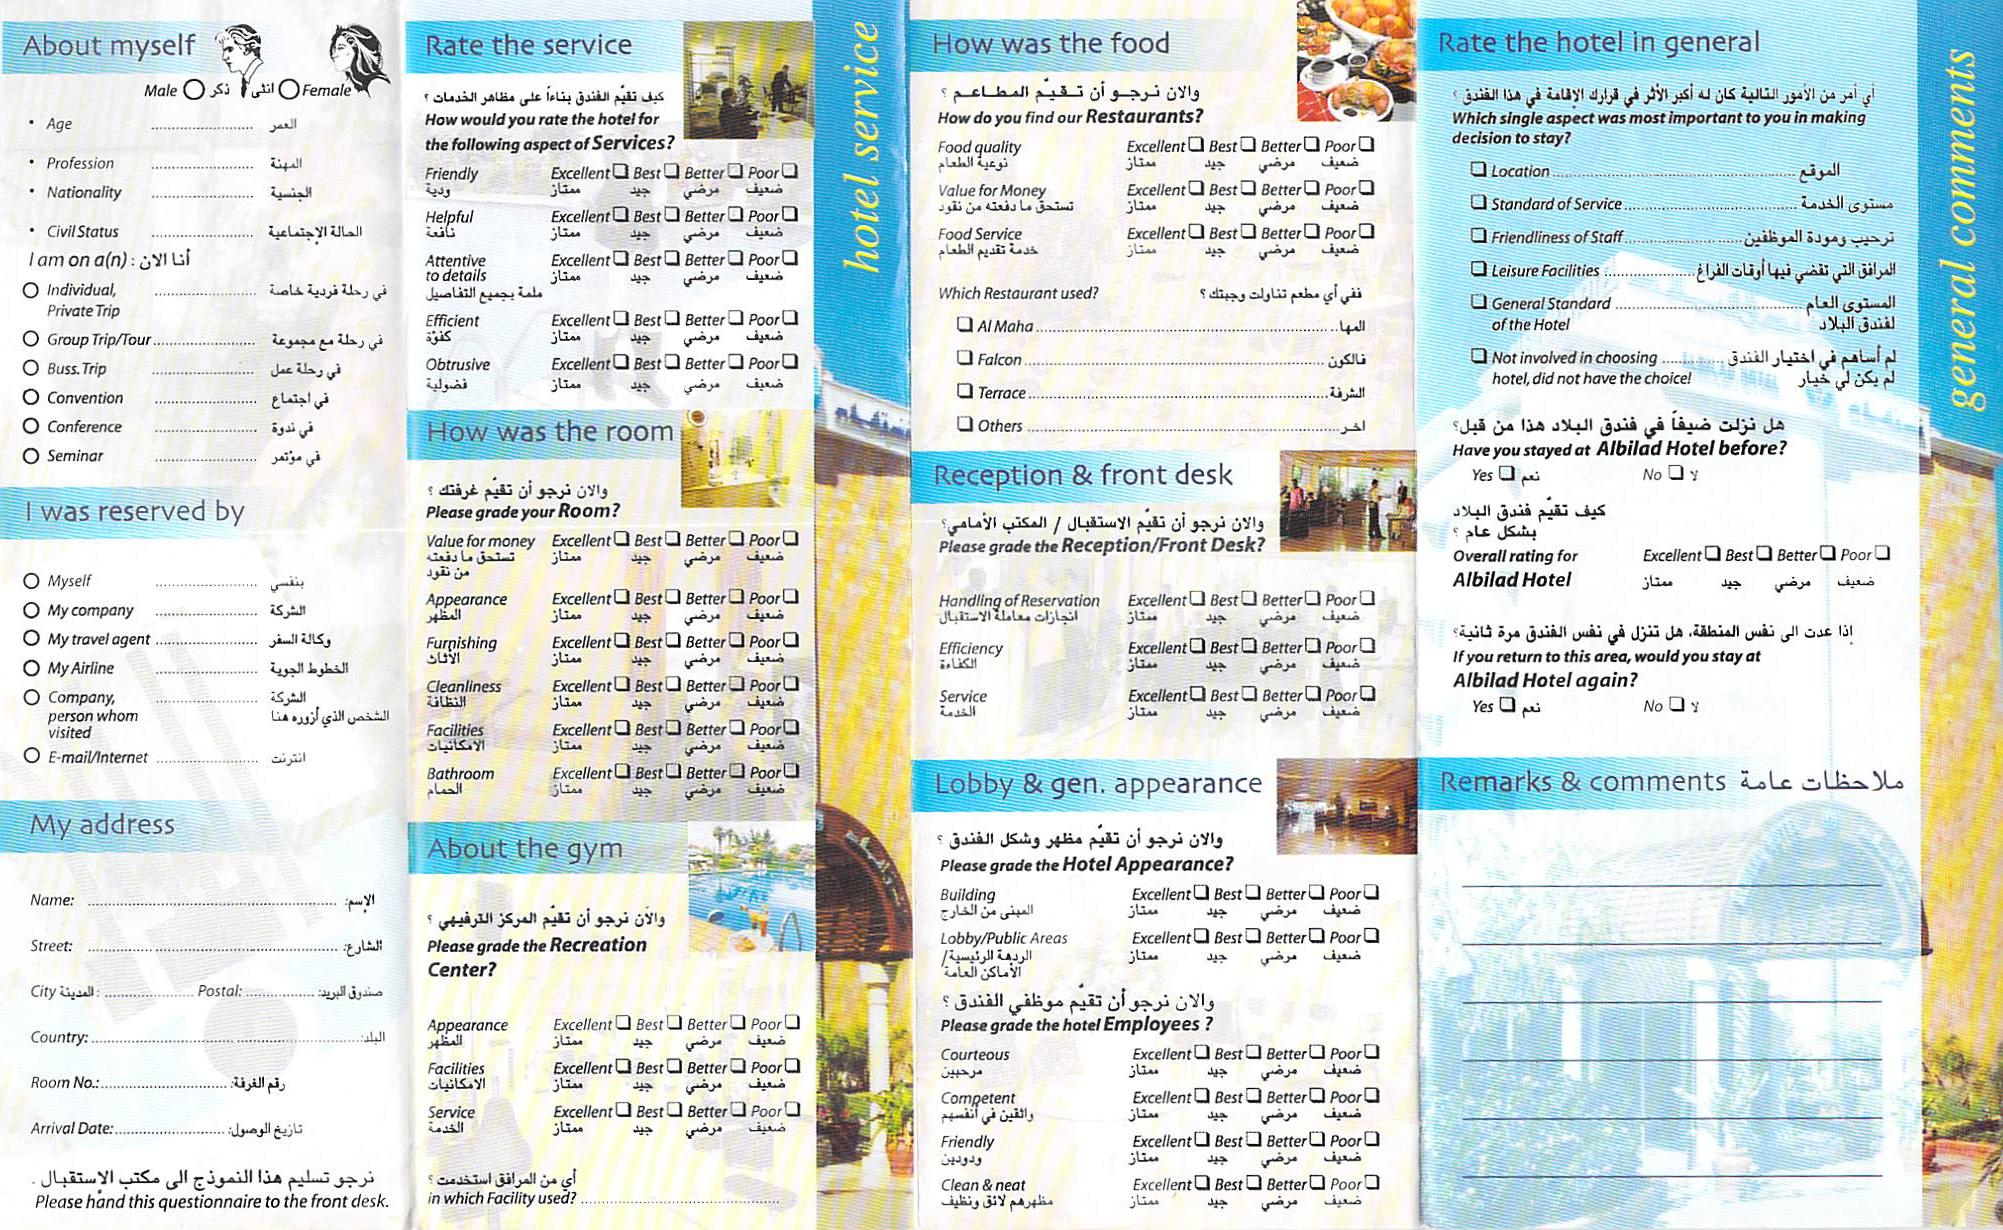 Customer satisfaction questionnaire for hotel